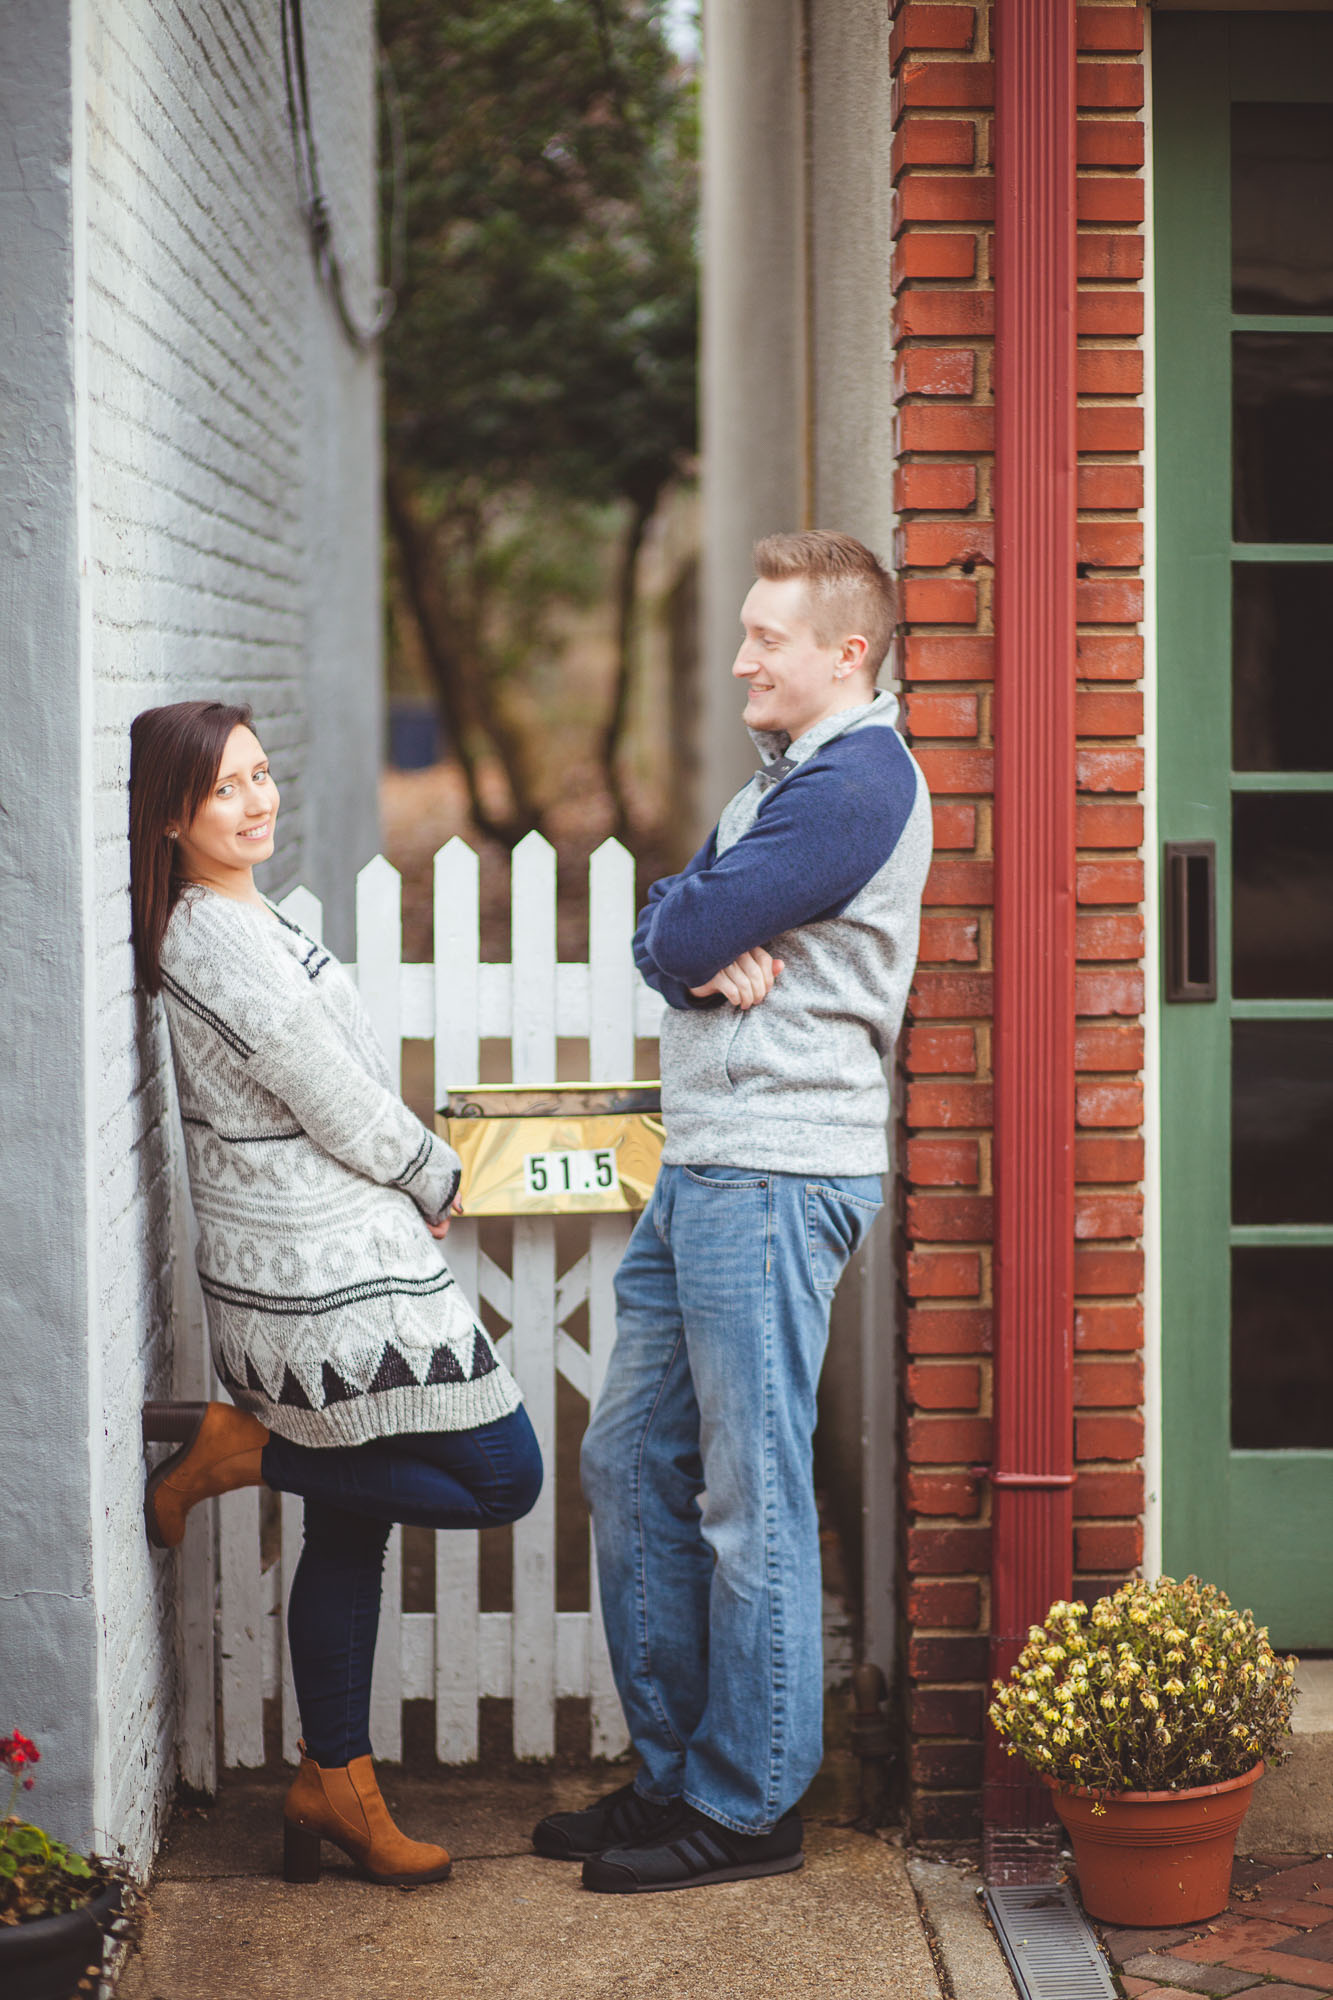 Engagement Session Turned Proposal Downtown Annapolis Petruzzo Photography 09